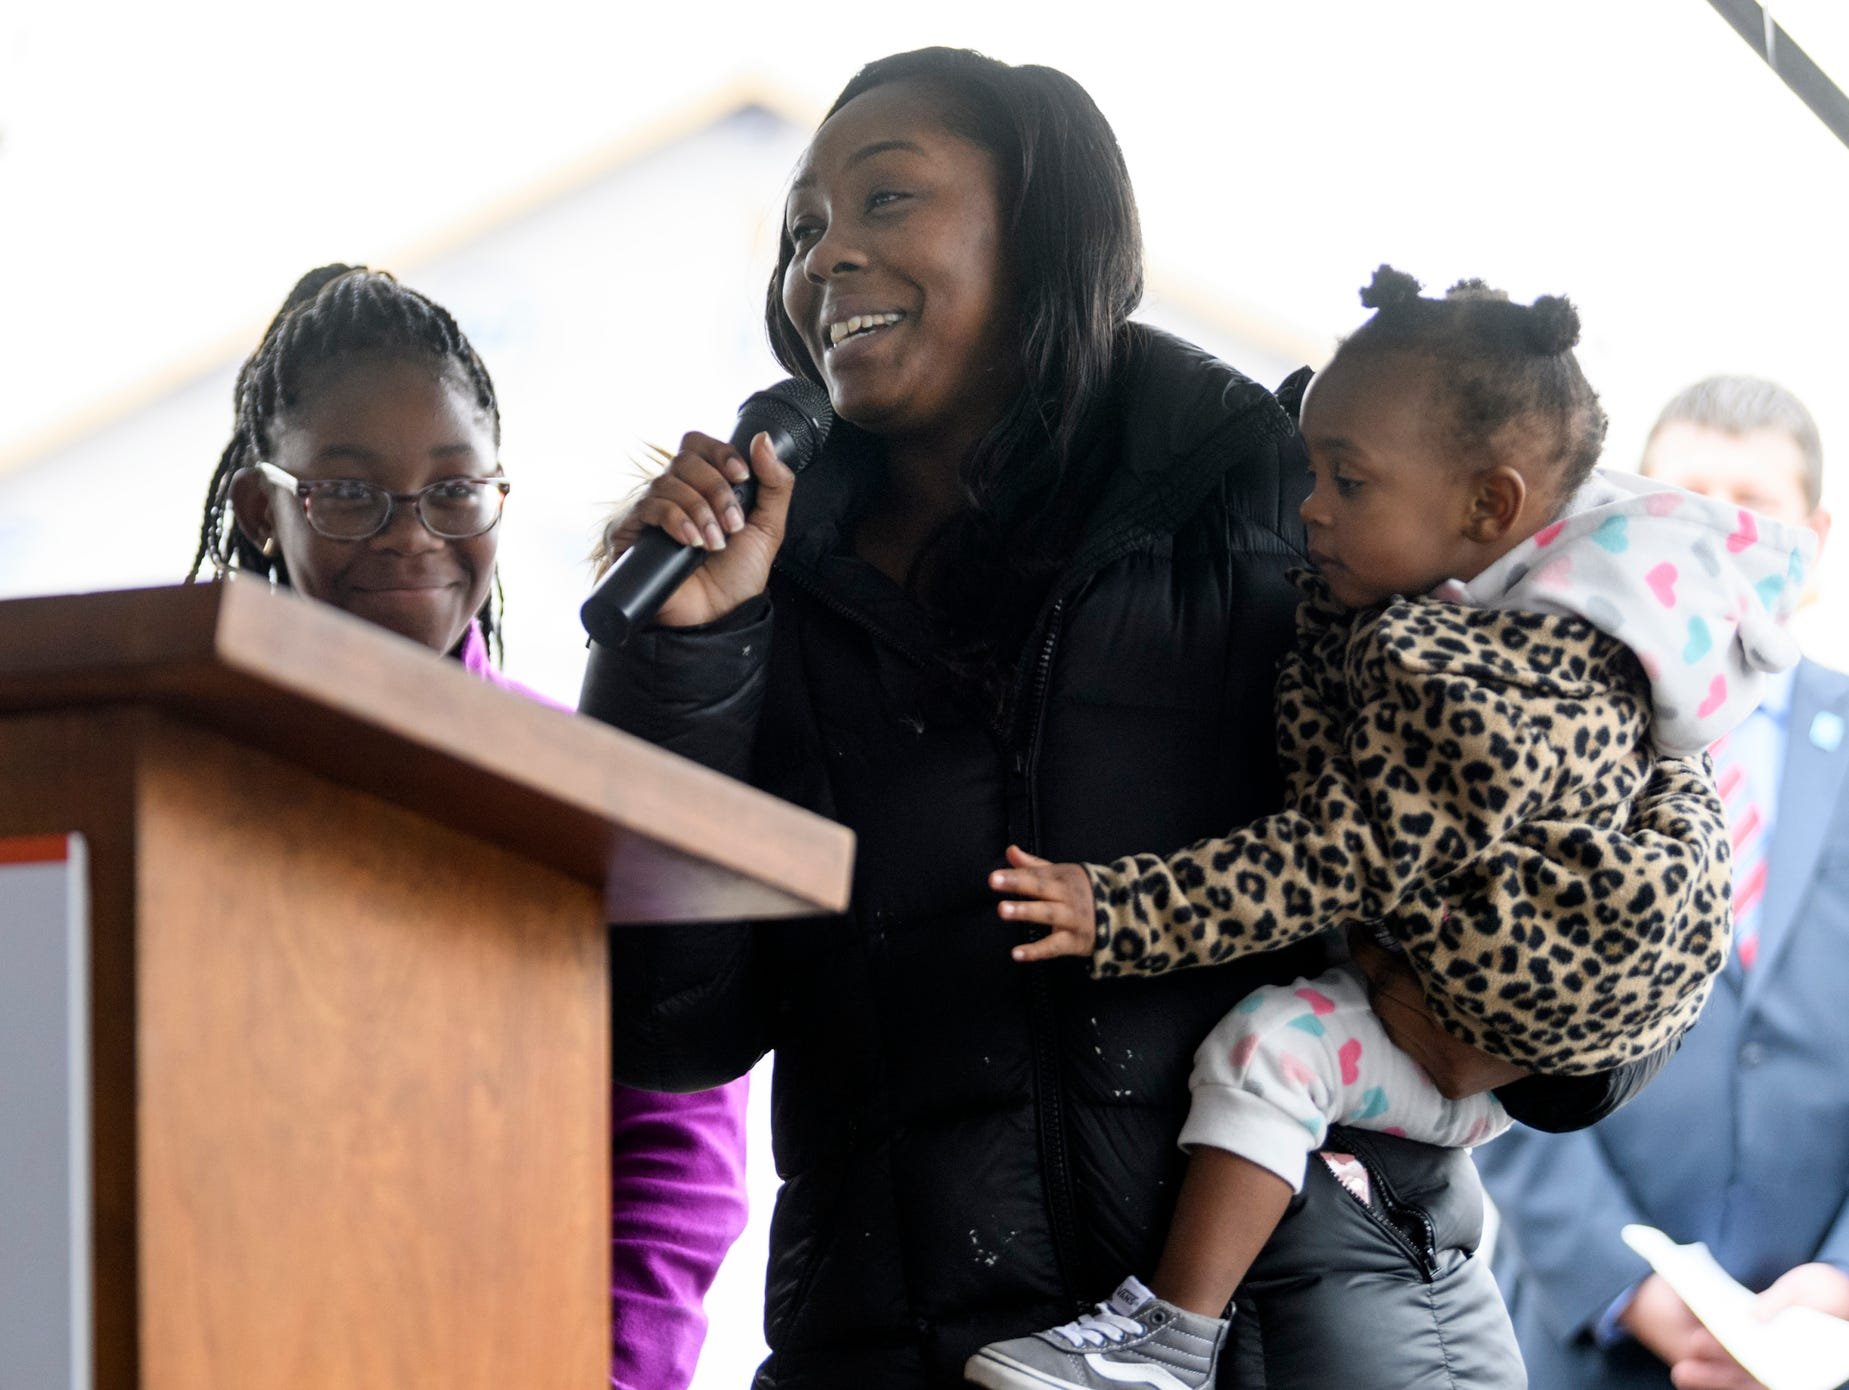 Tamisha Dilworth, the 500th homeowner, thanks the crowd for attending the Habitat for Humanity home dedication ceremony for four new homeowners, including her, as she is joined by two of her children Aliyah, left, and Teresa, right, at the podium on Bedford Avenue in Evansville, Ind., Thursday, Dec. 20, 2018.